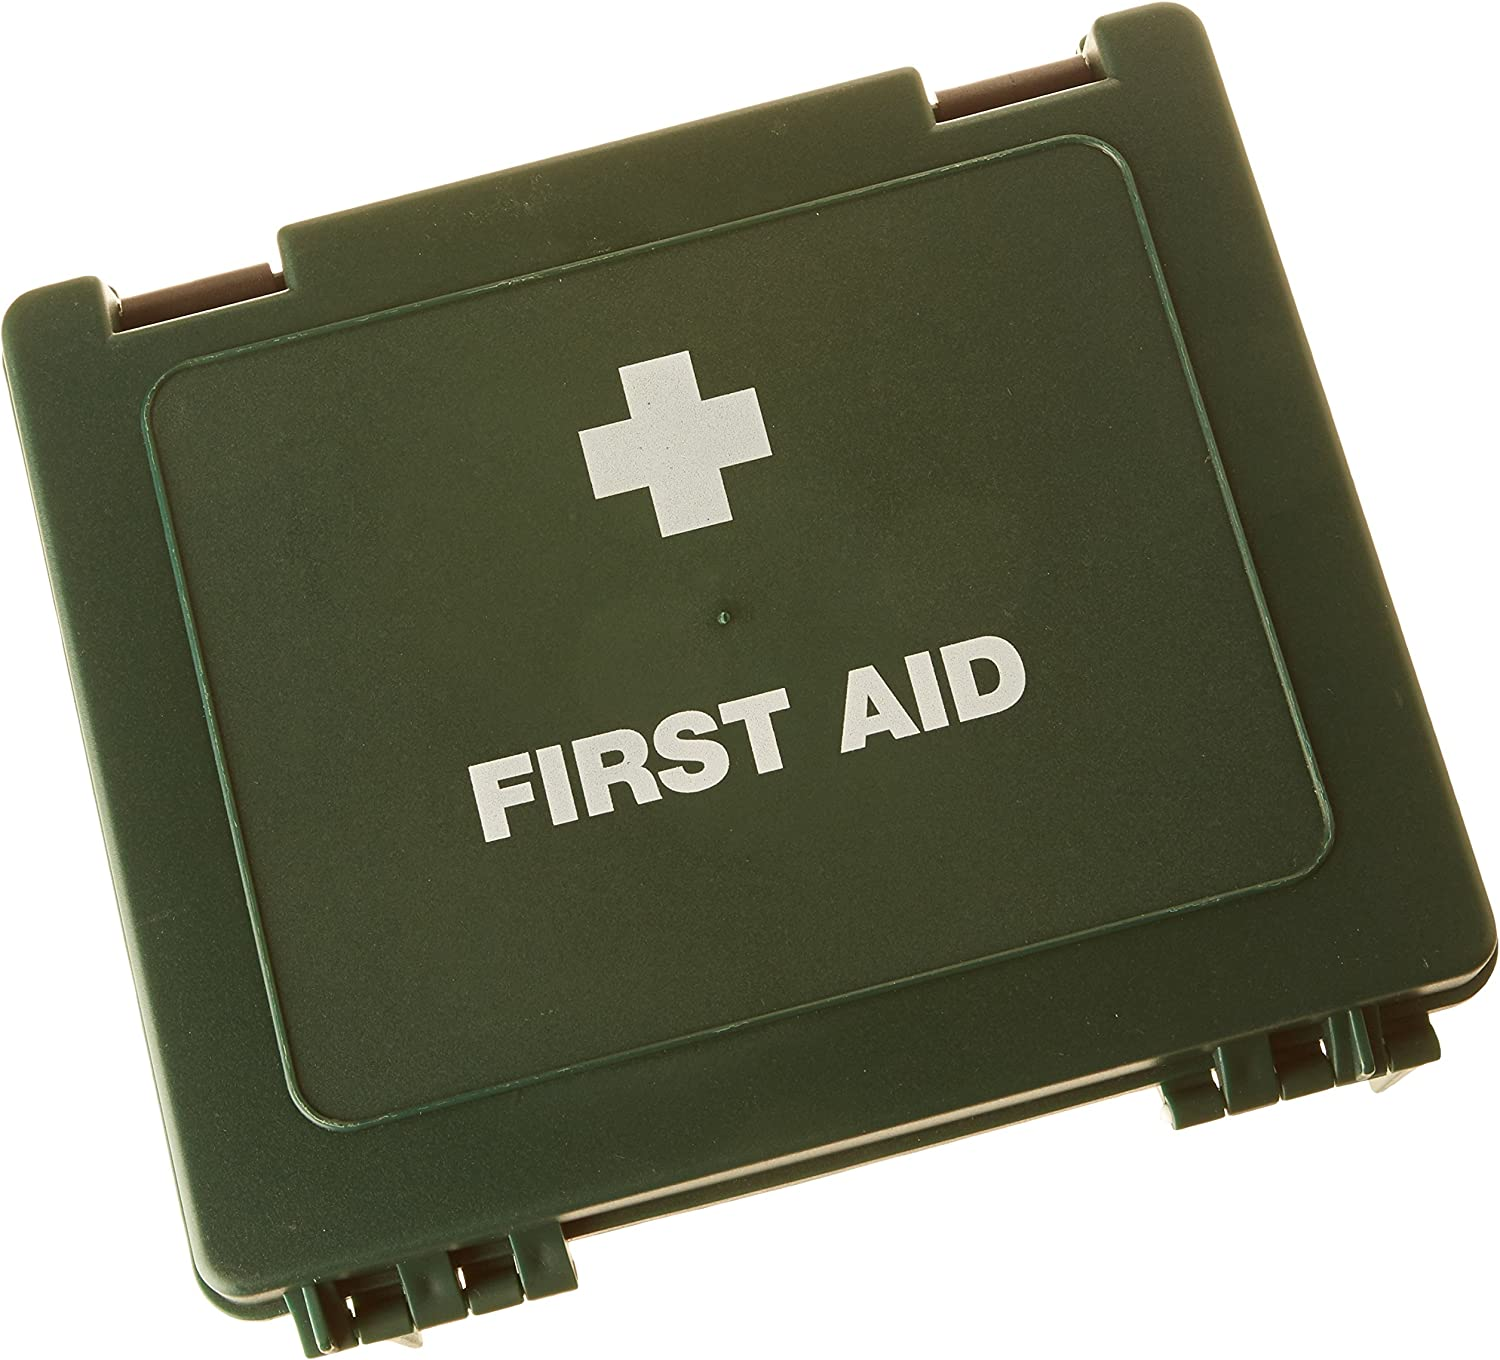 Reliance Free shipping Medical HSE 20 Person Workplace Fees free First Box Aid Green Kit